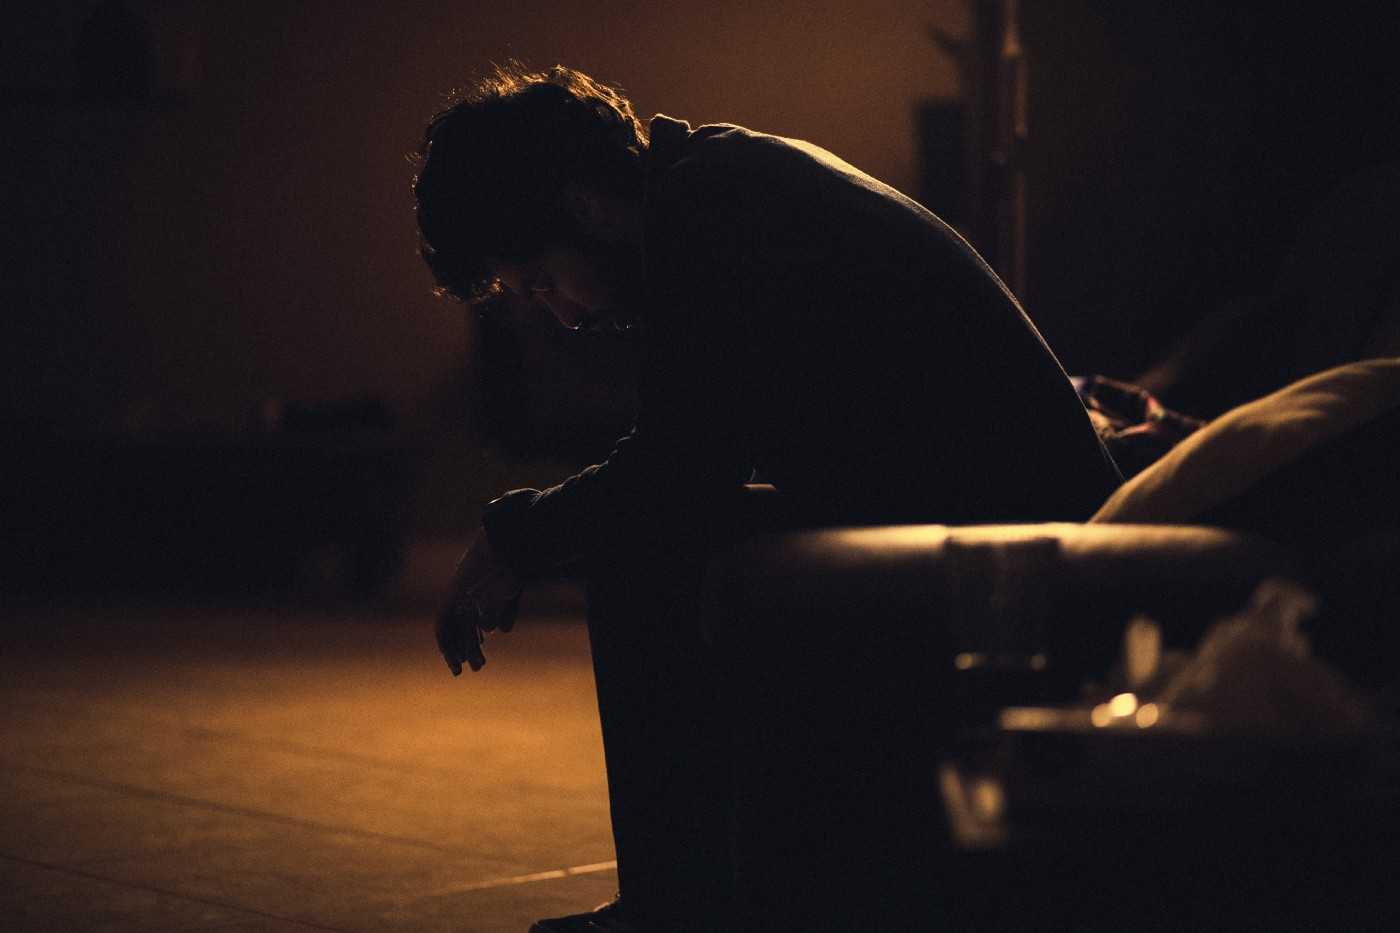 In a room without much light, a man sits on a couch with his arms resting on his legs, his eyes closed, and his head bowed.